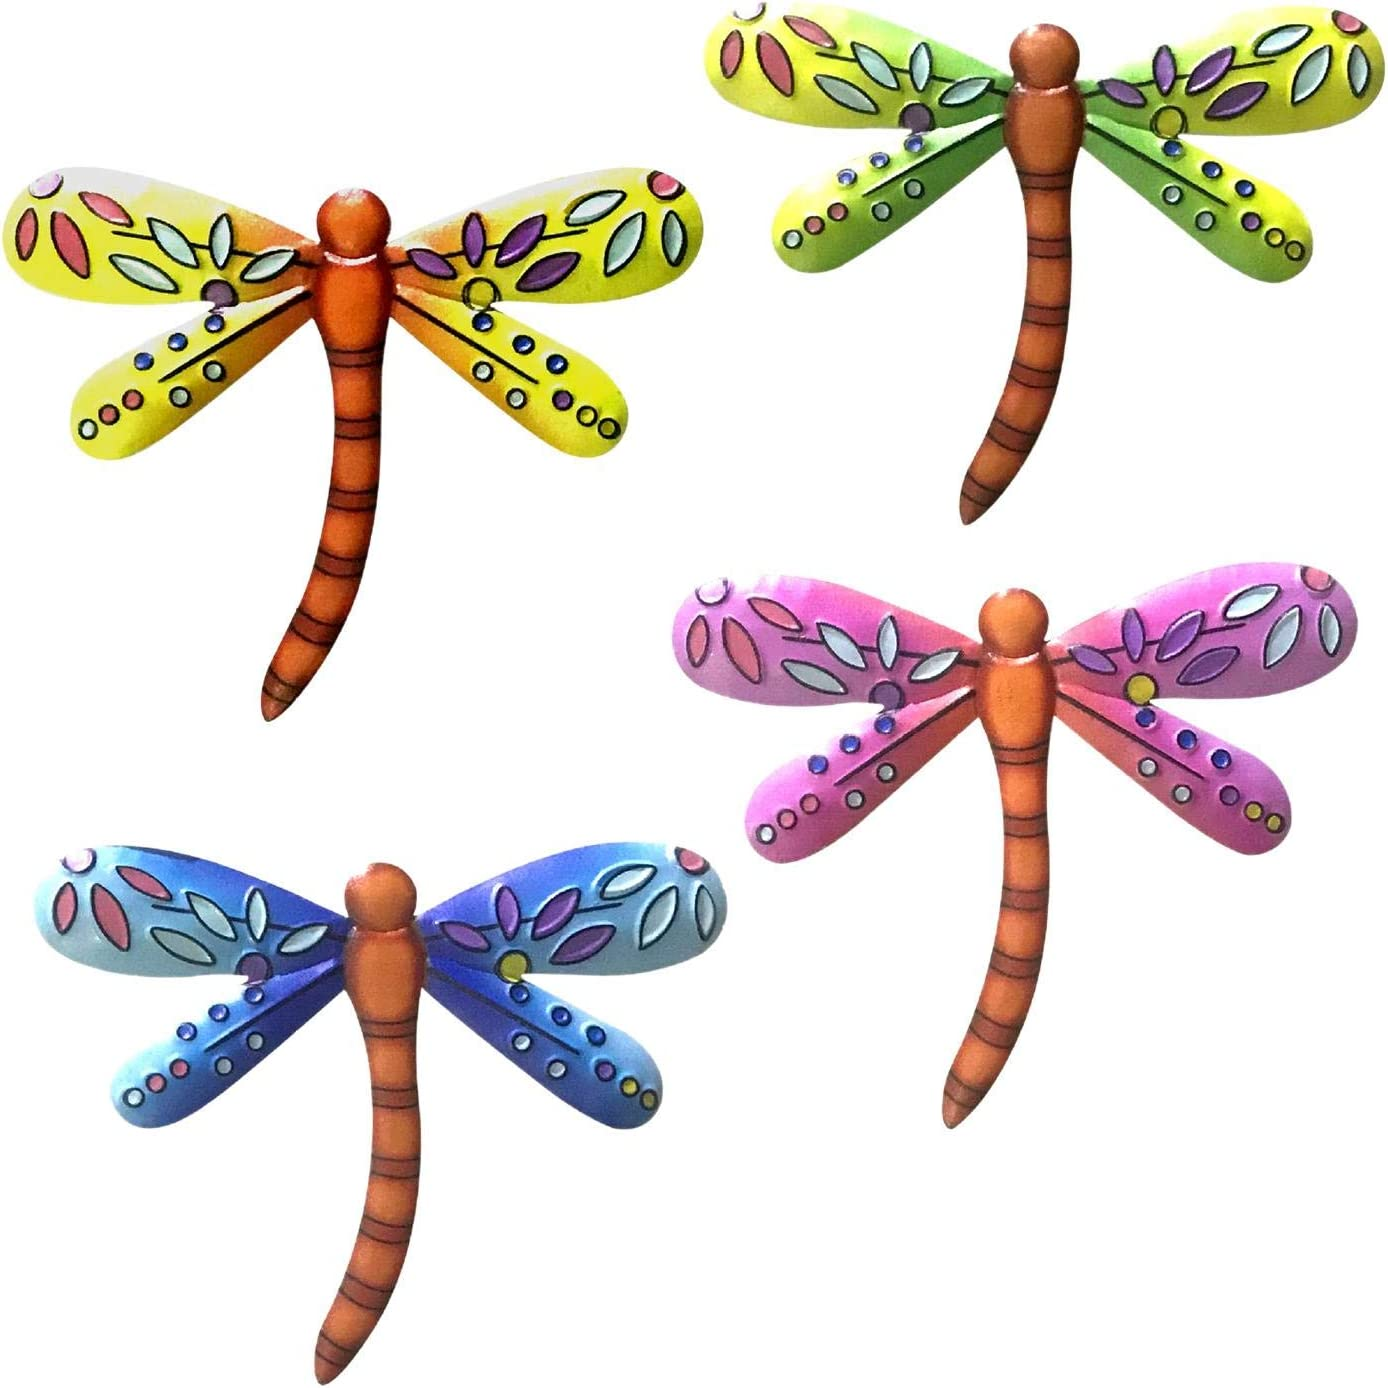 4pcs Metal Dragonfly Garden Wall Decor Outdoor Fence Art Outside Hanging Decorations for Living Room Bedroom, Dragonfly Hanging Ornament Art Decor